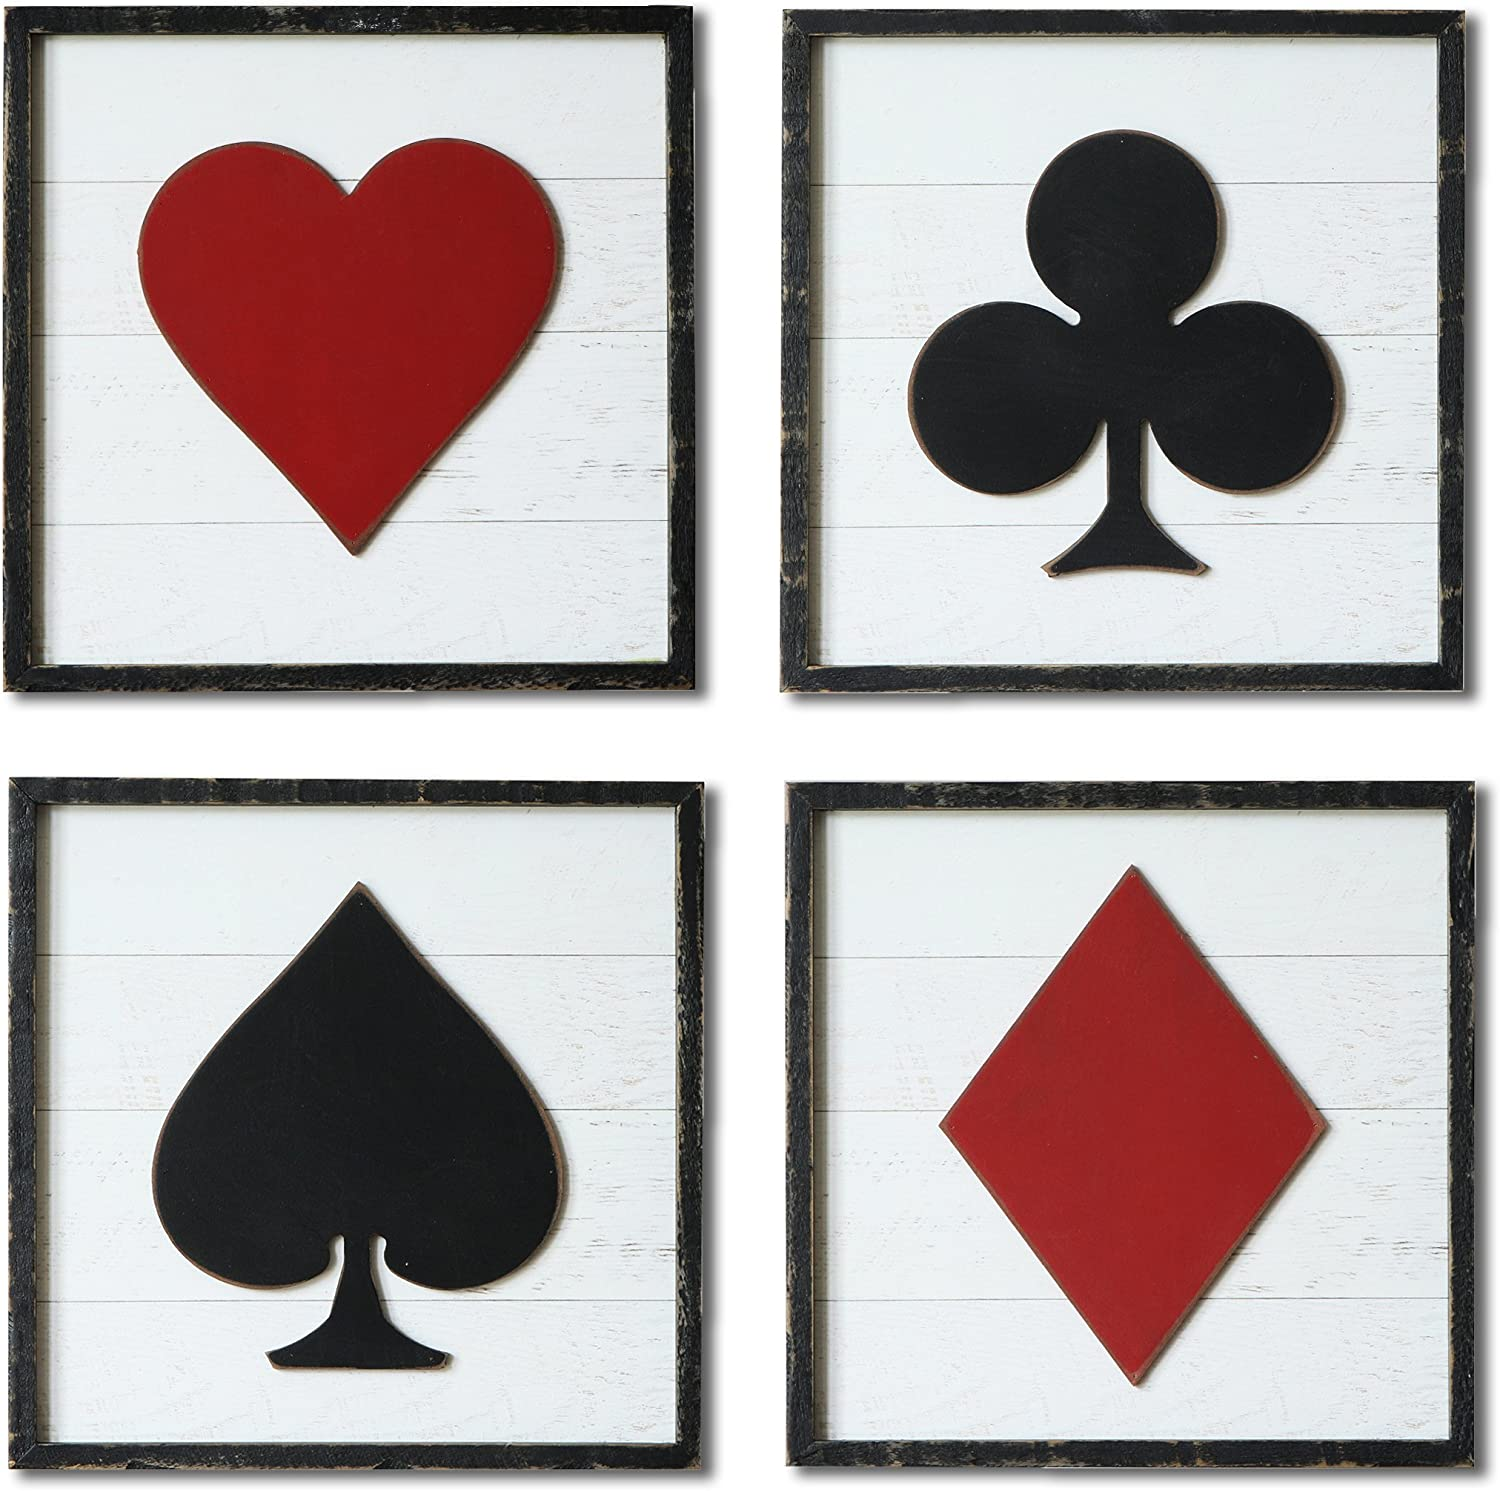 NIKKY HOME Wood Framed Poker Sign Square Wall Art (Set)